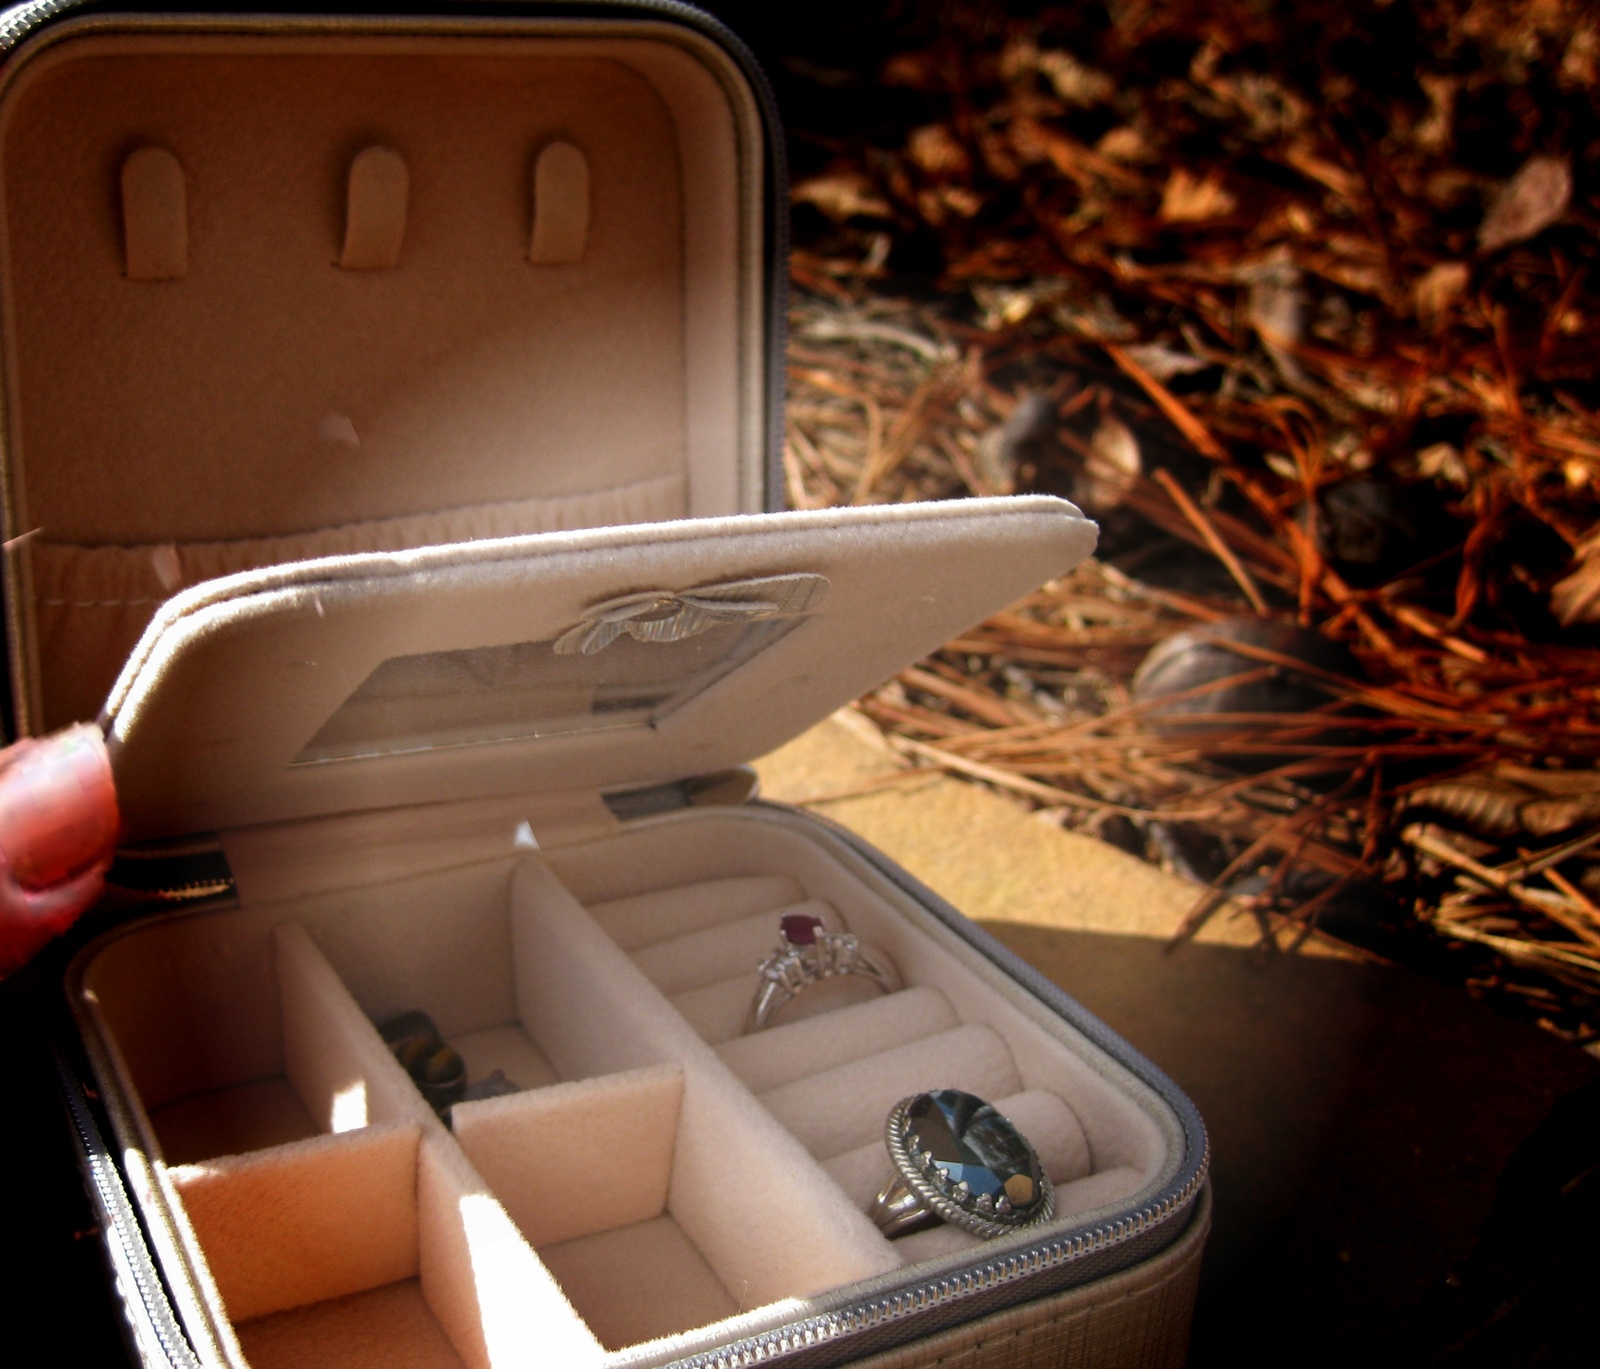 Primary image for Haunted small take anywhere recharging amplification box for spirit jewelry